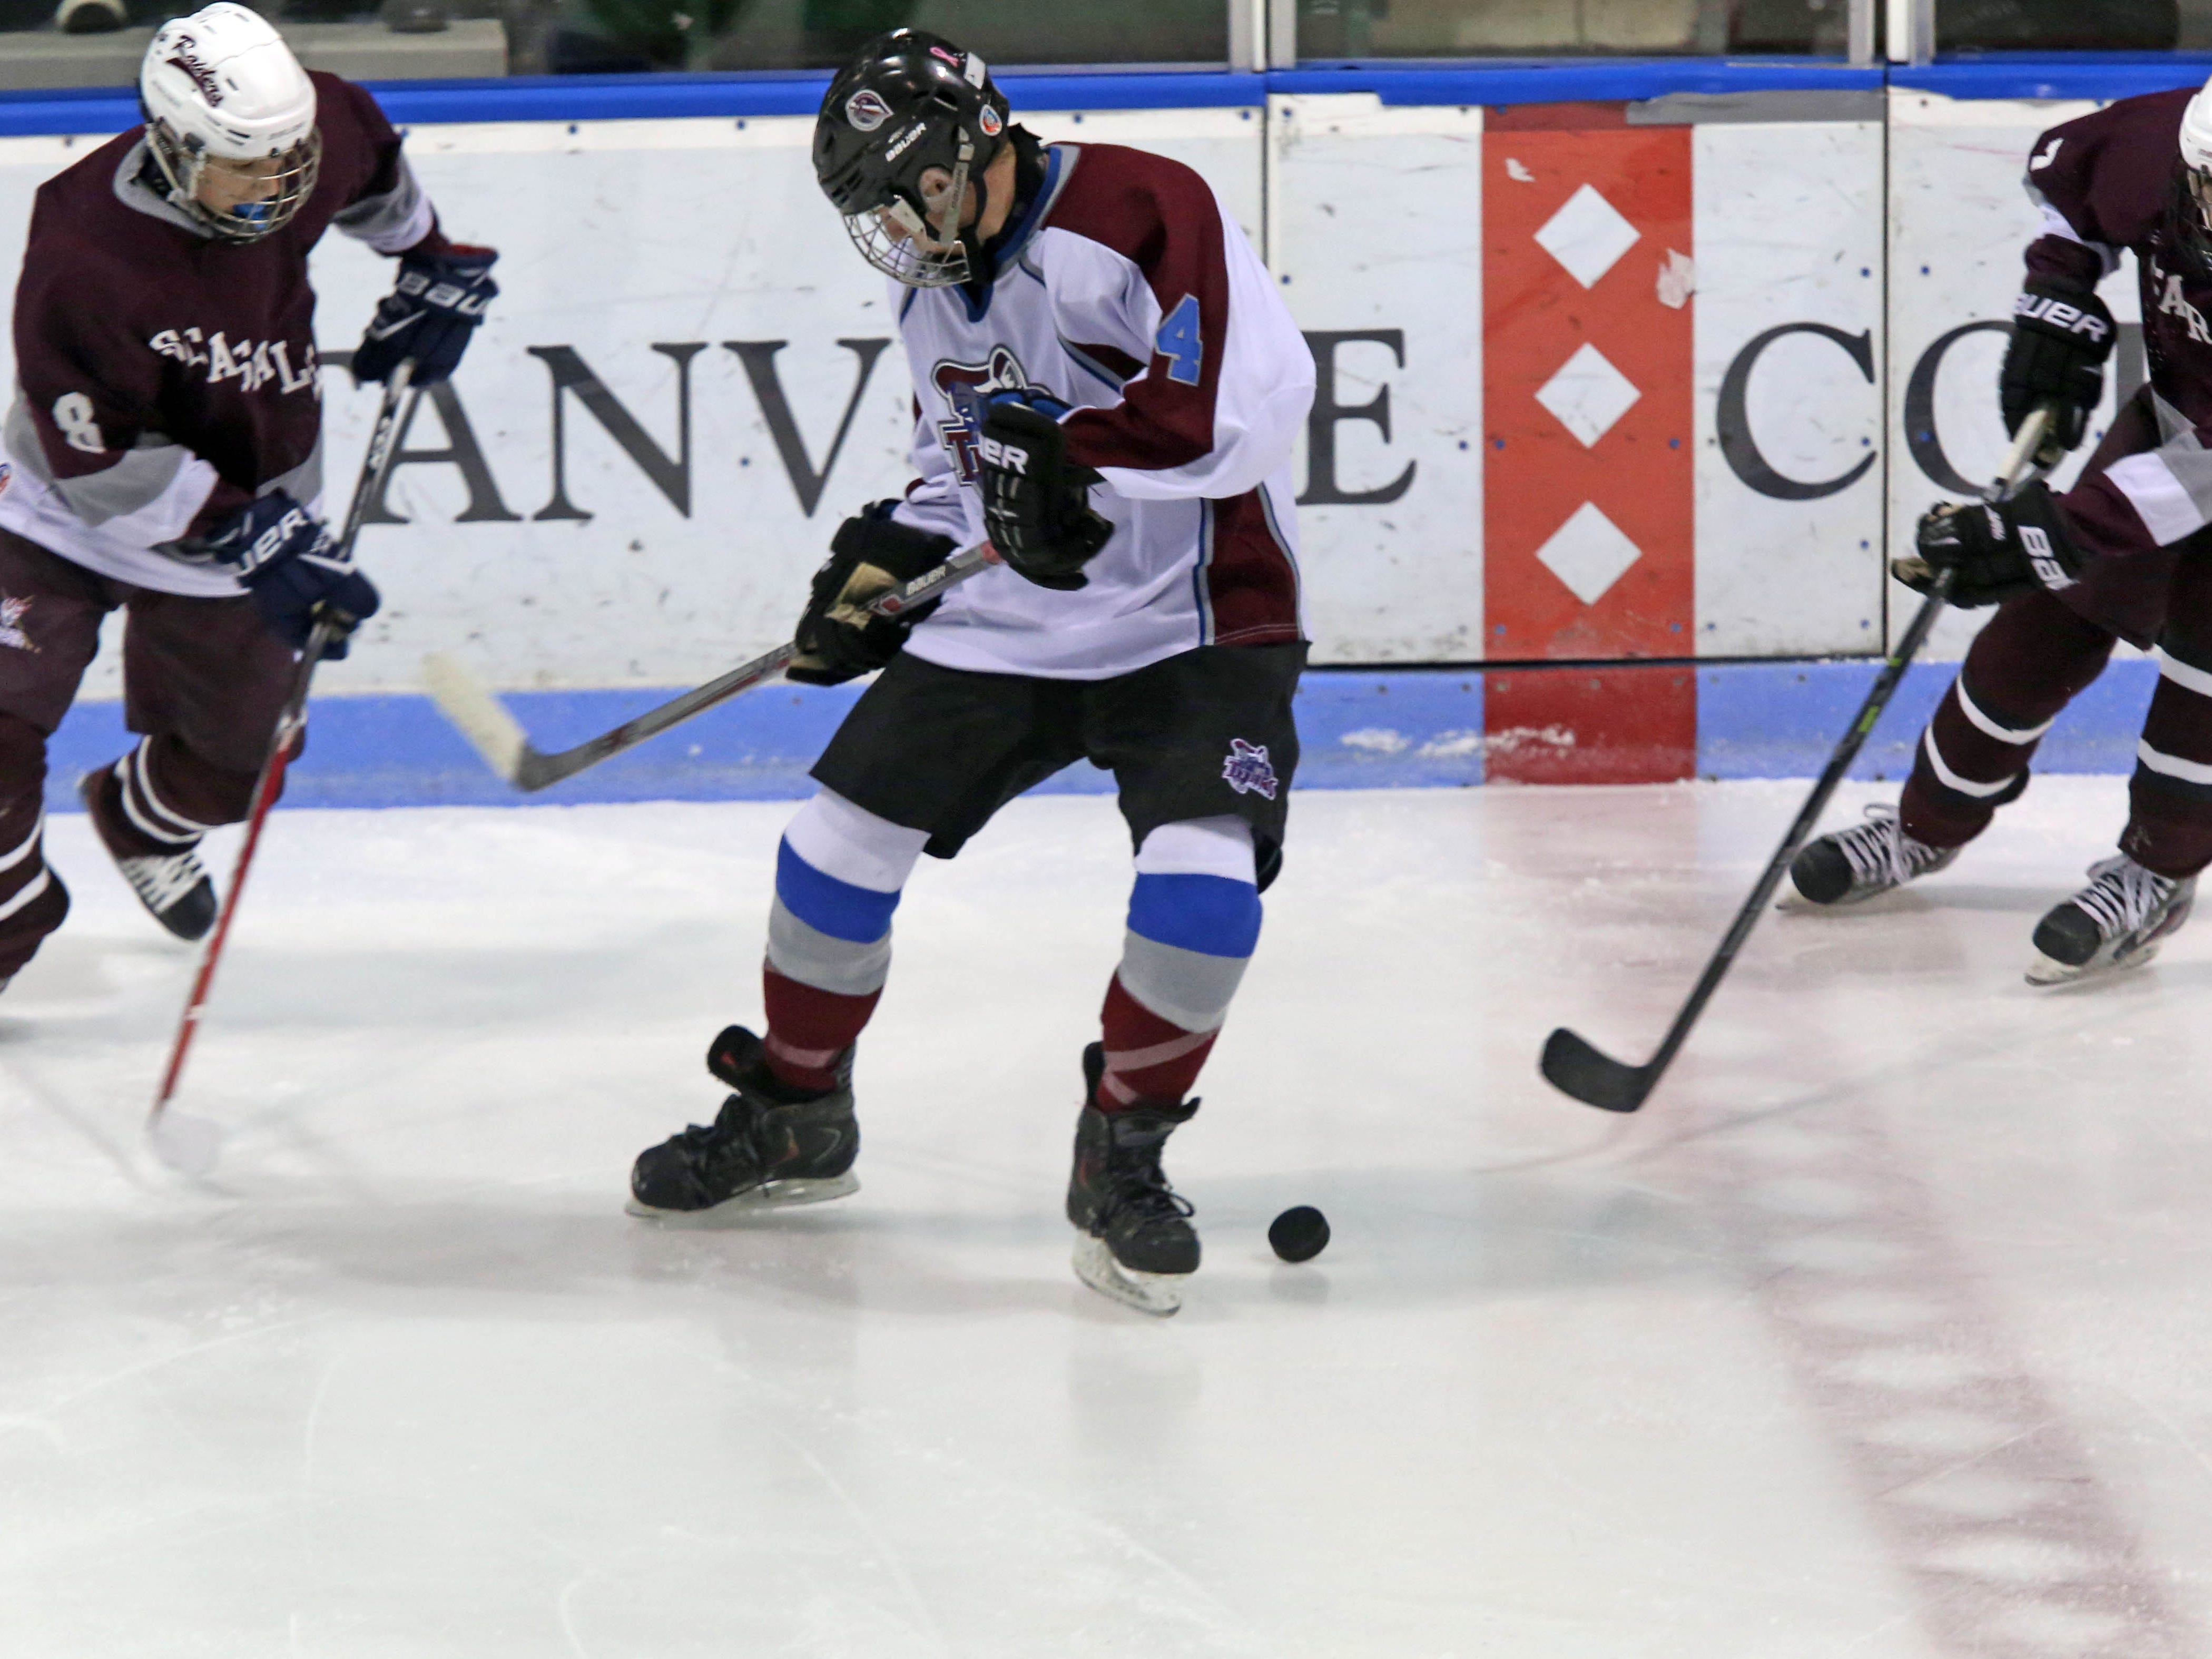 Scarsdale's Robert Kramer, left, and Brandon Bank try to steal the puck from Rye Town/Harrison's Ike Murov during Monday's game at Rye Playland.